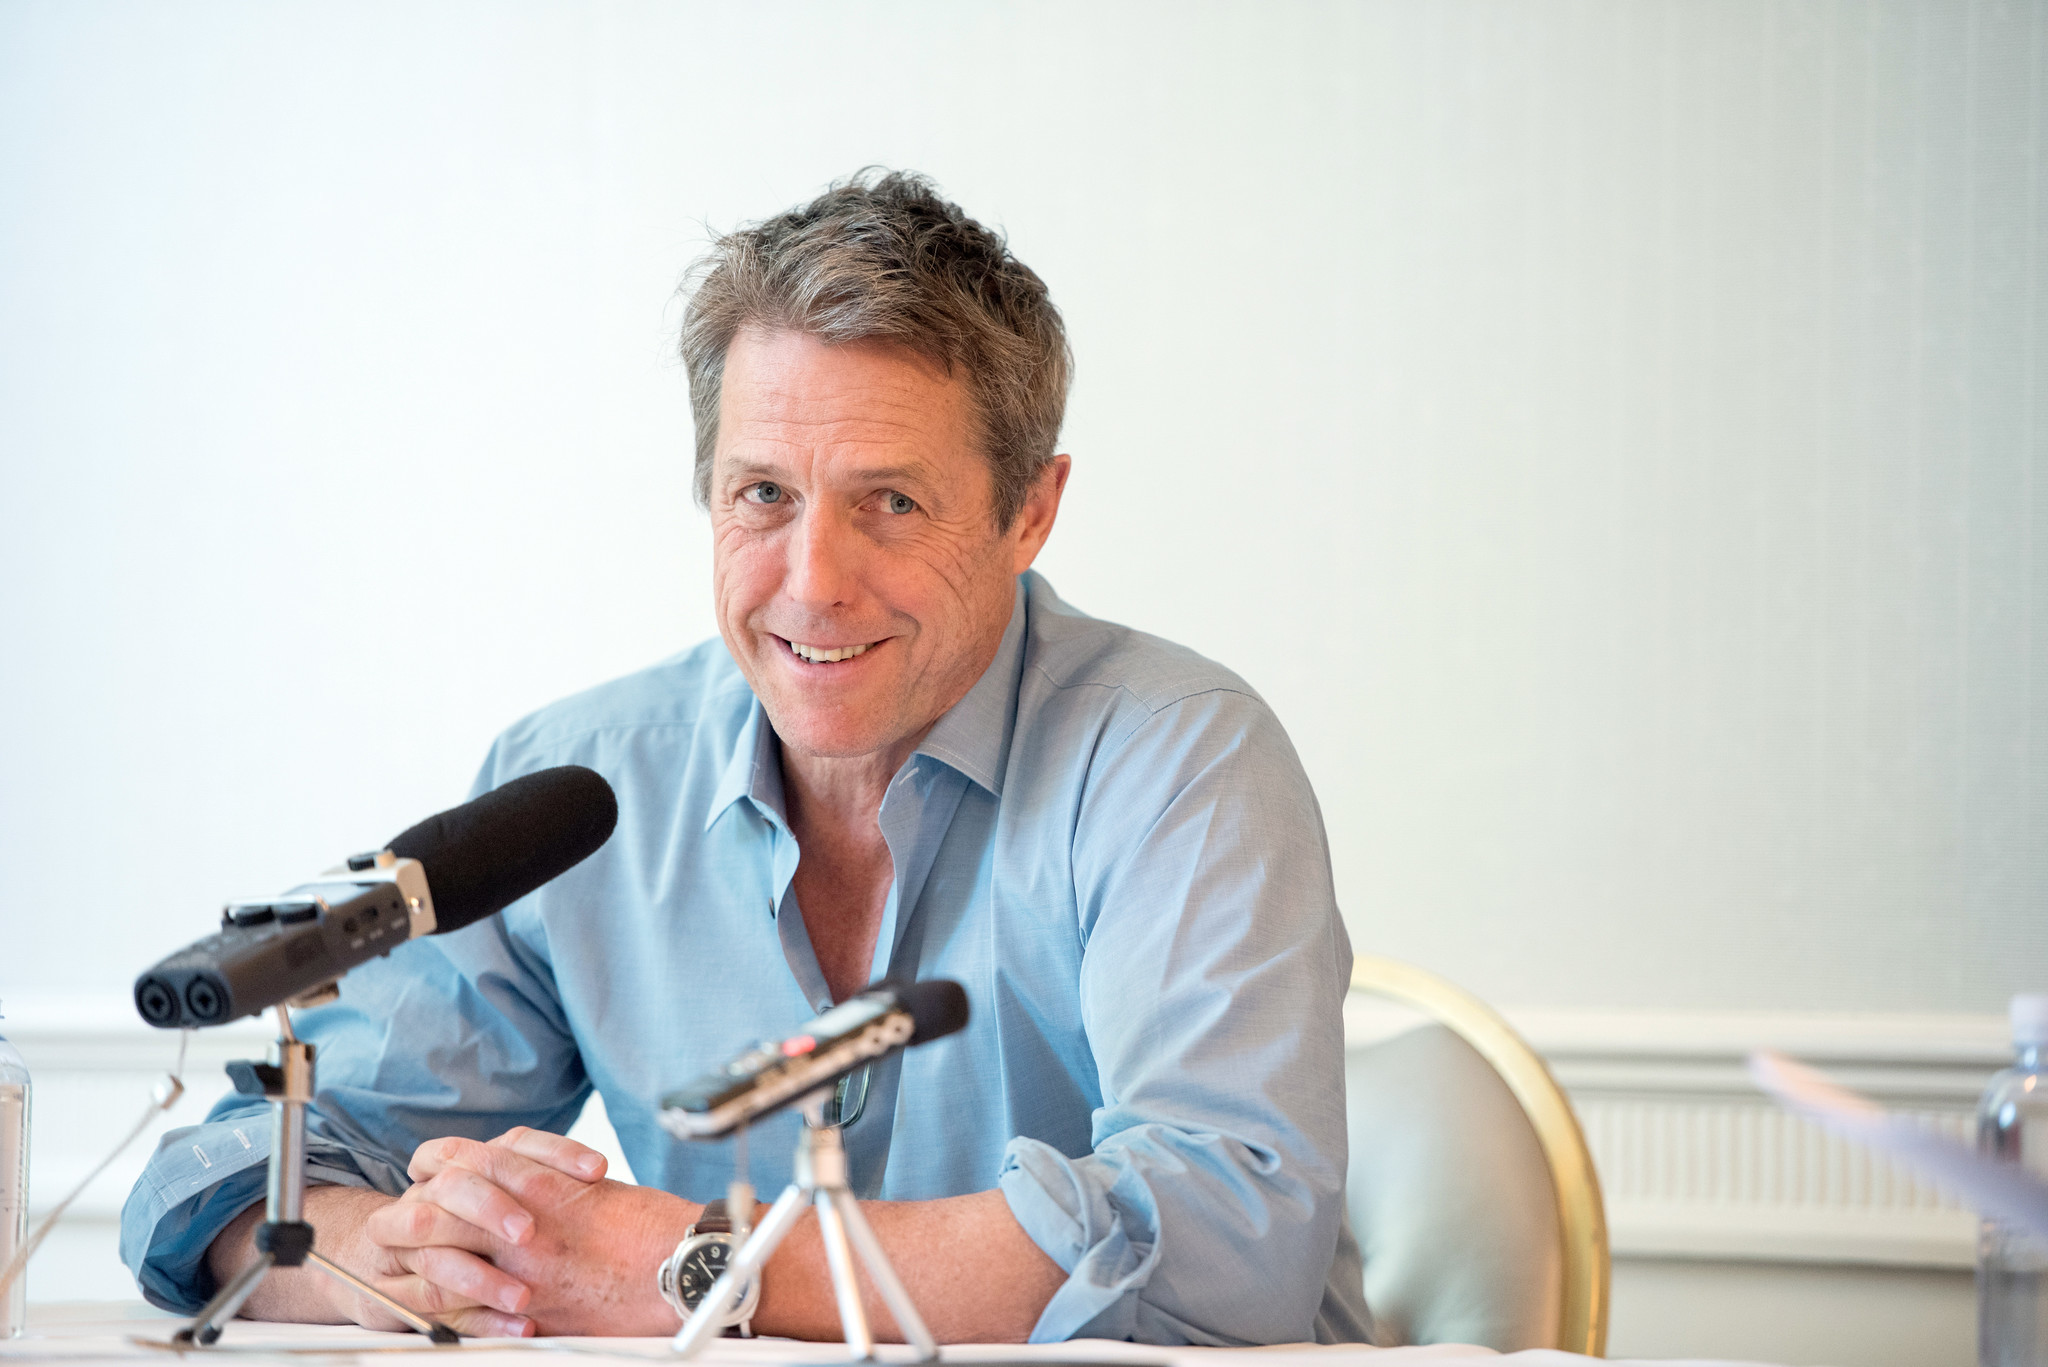 'Absolute Hell:' Hugh Grant says he hated doing dancing scene in 'Love Actually'